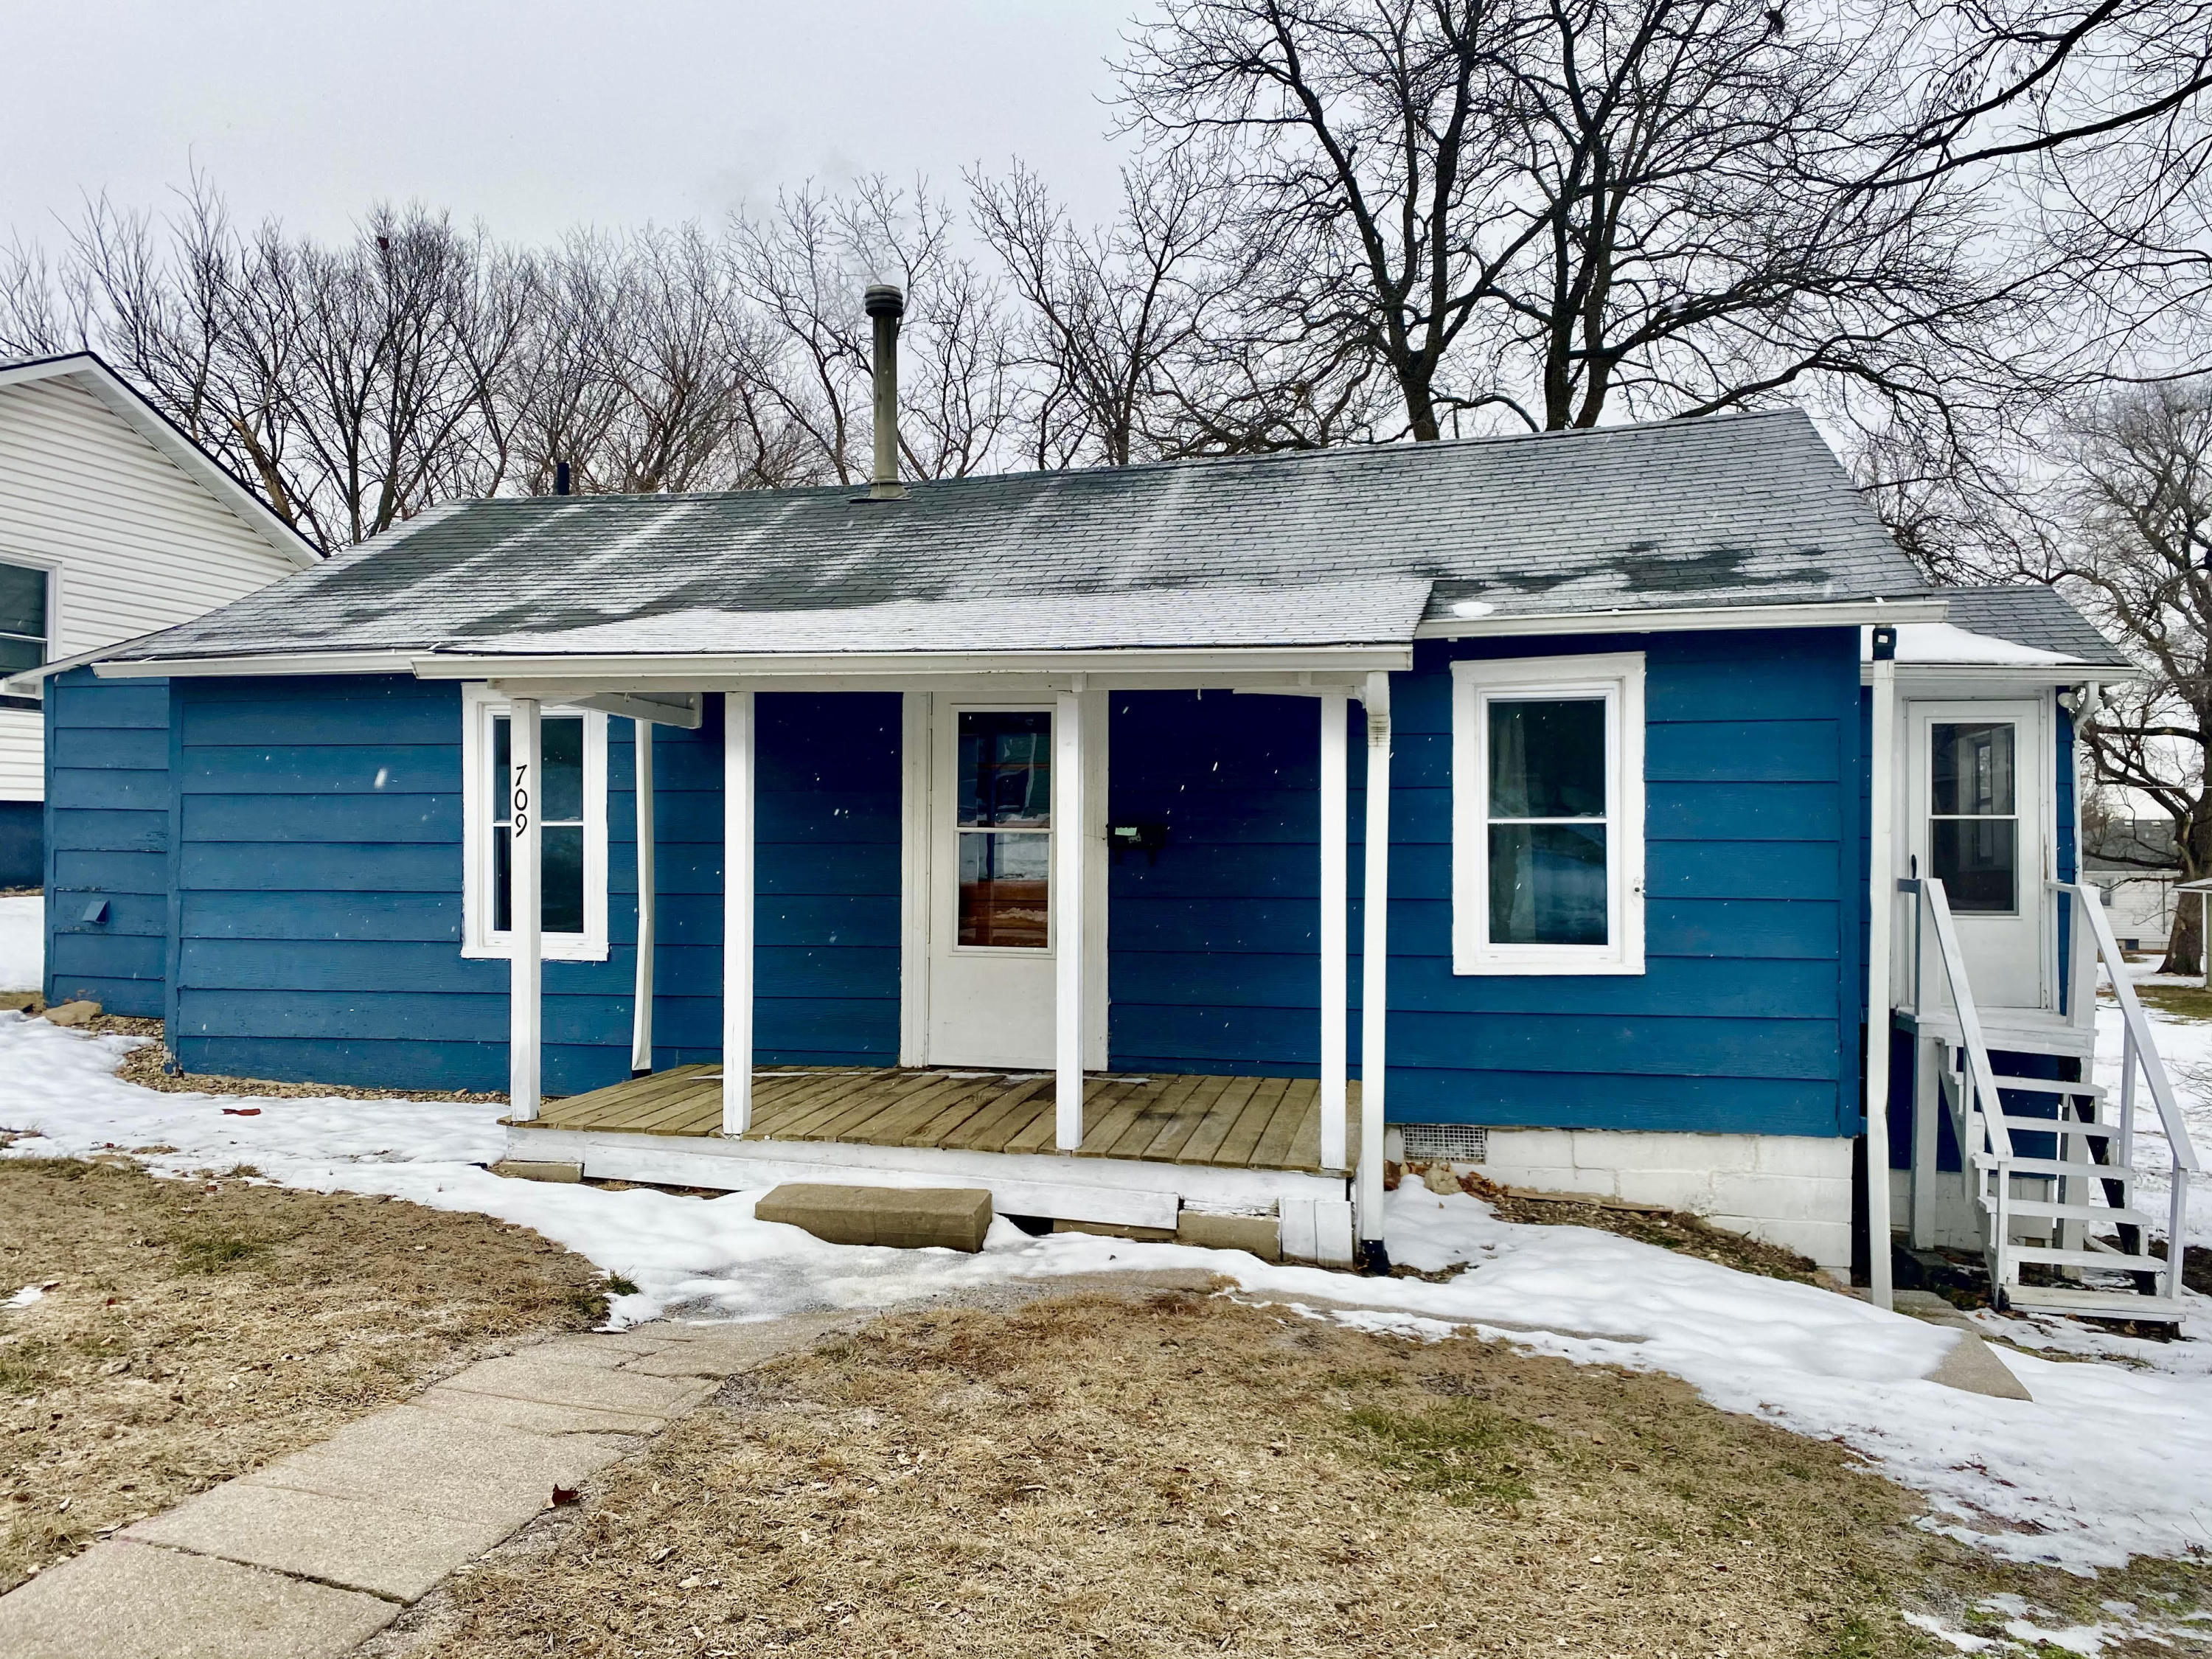 709 E 2ND Street, Maryville, Missouri 64468, 2 Bedrooms Bedrooms, ,1 BathroomBathrooms,Residential,2ND,4863